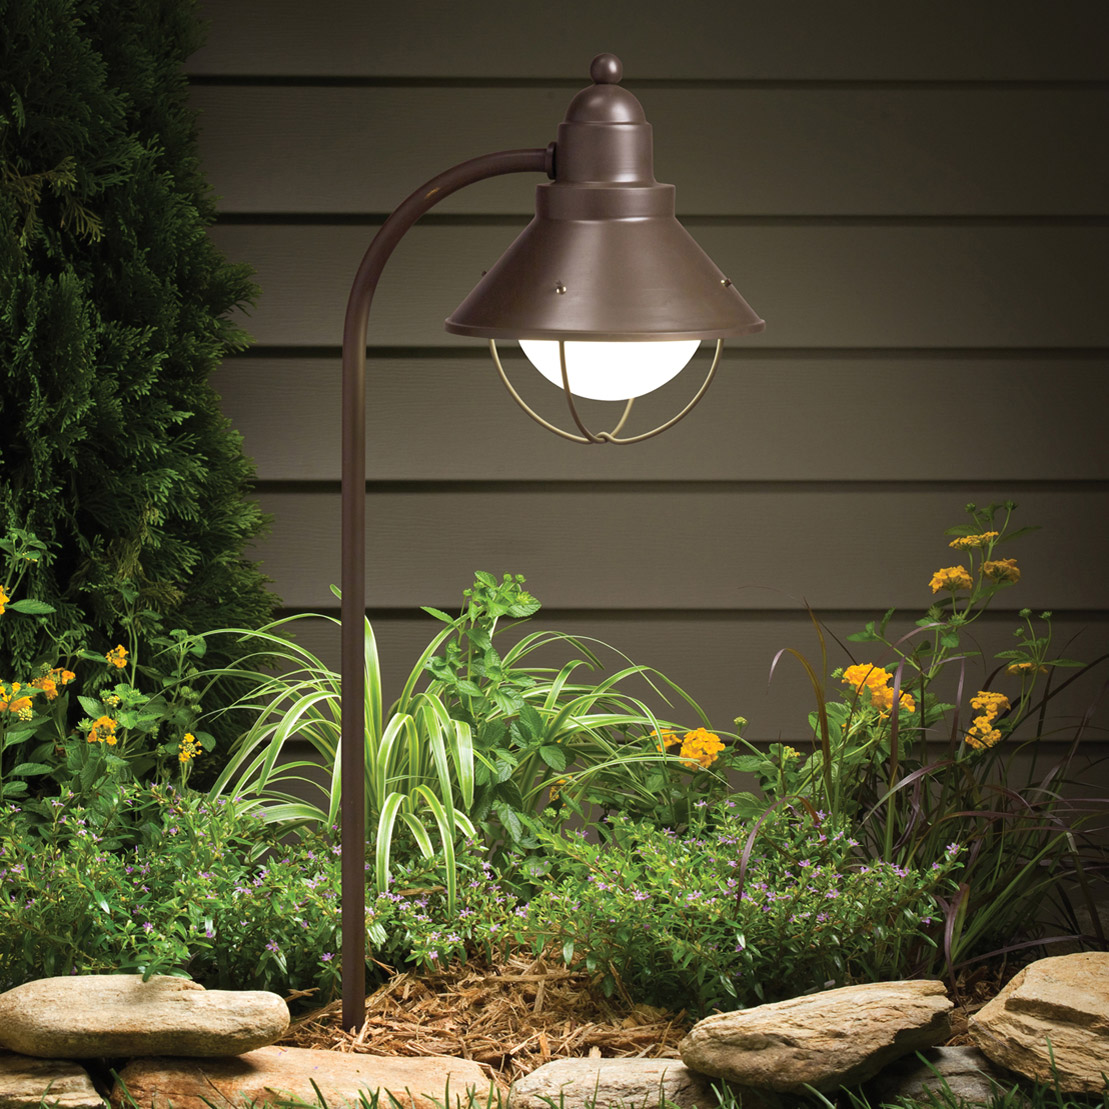 Kichler 15239oz seaside 120v landscape path spread light aloadofball Choice Image